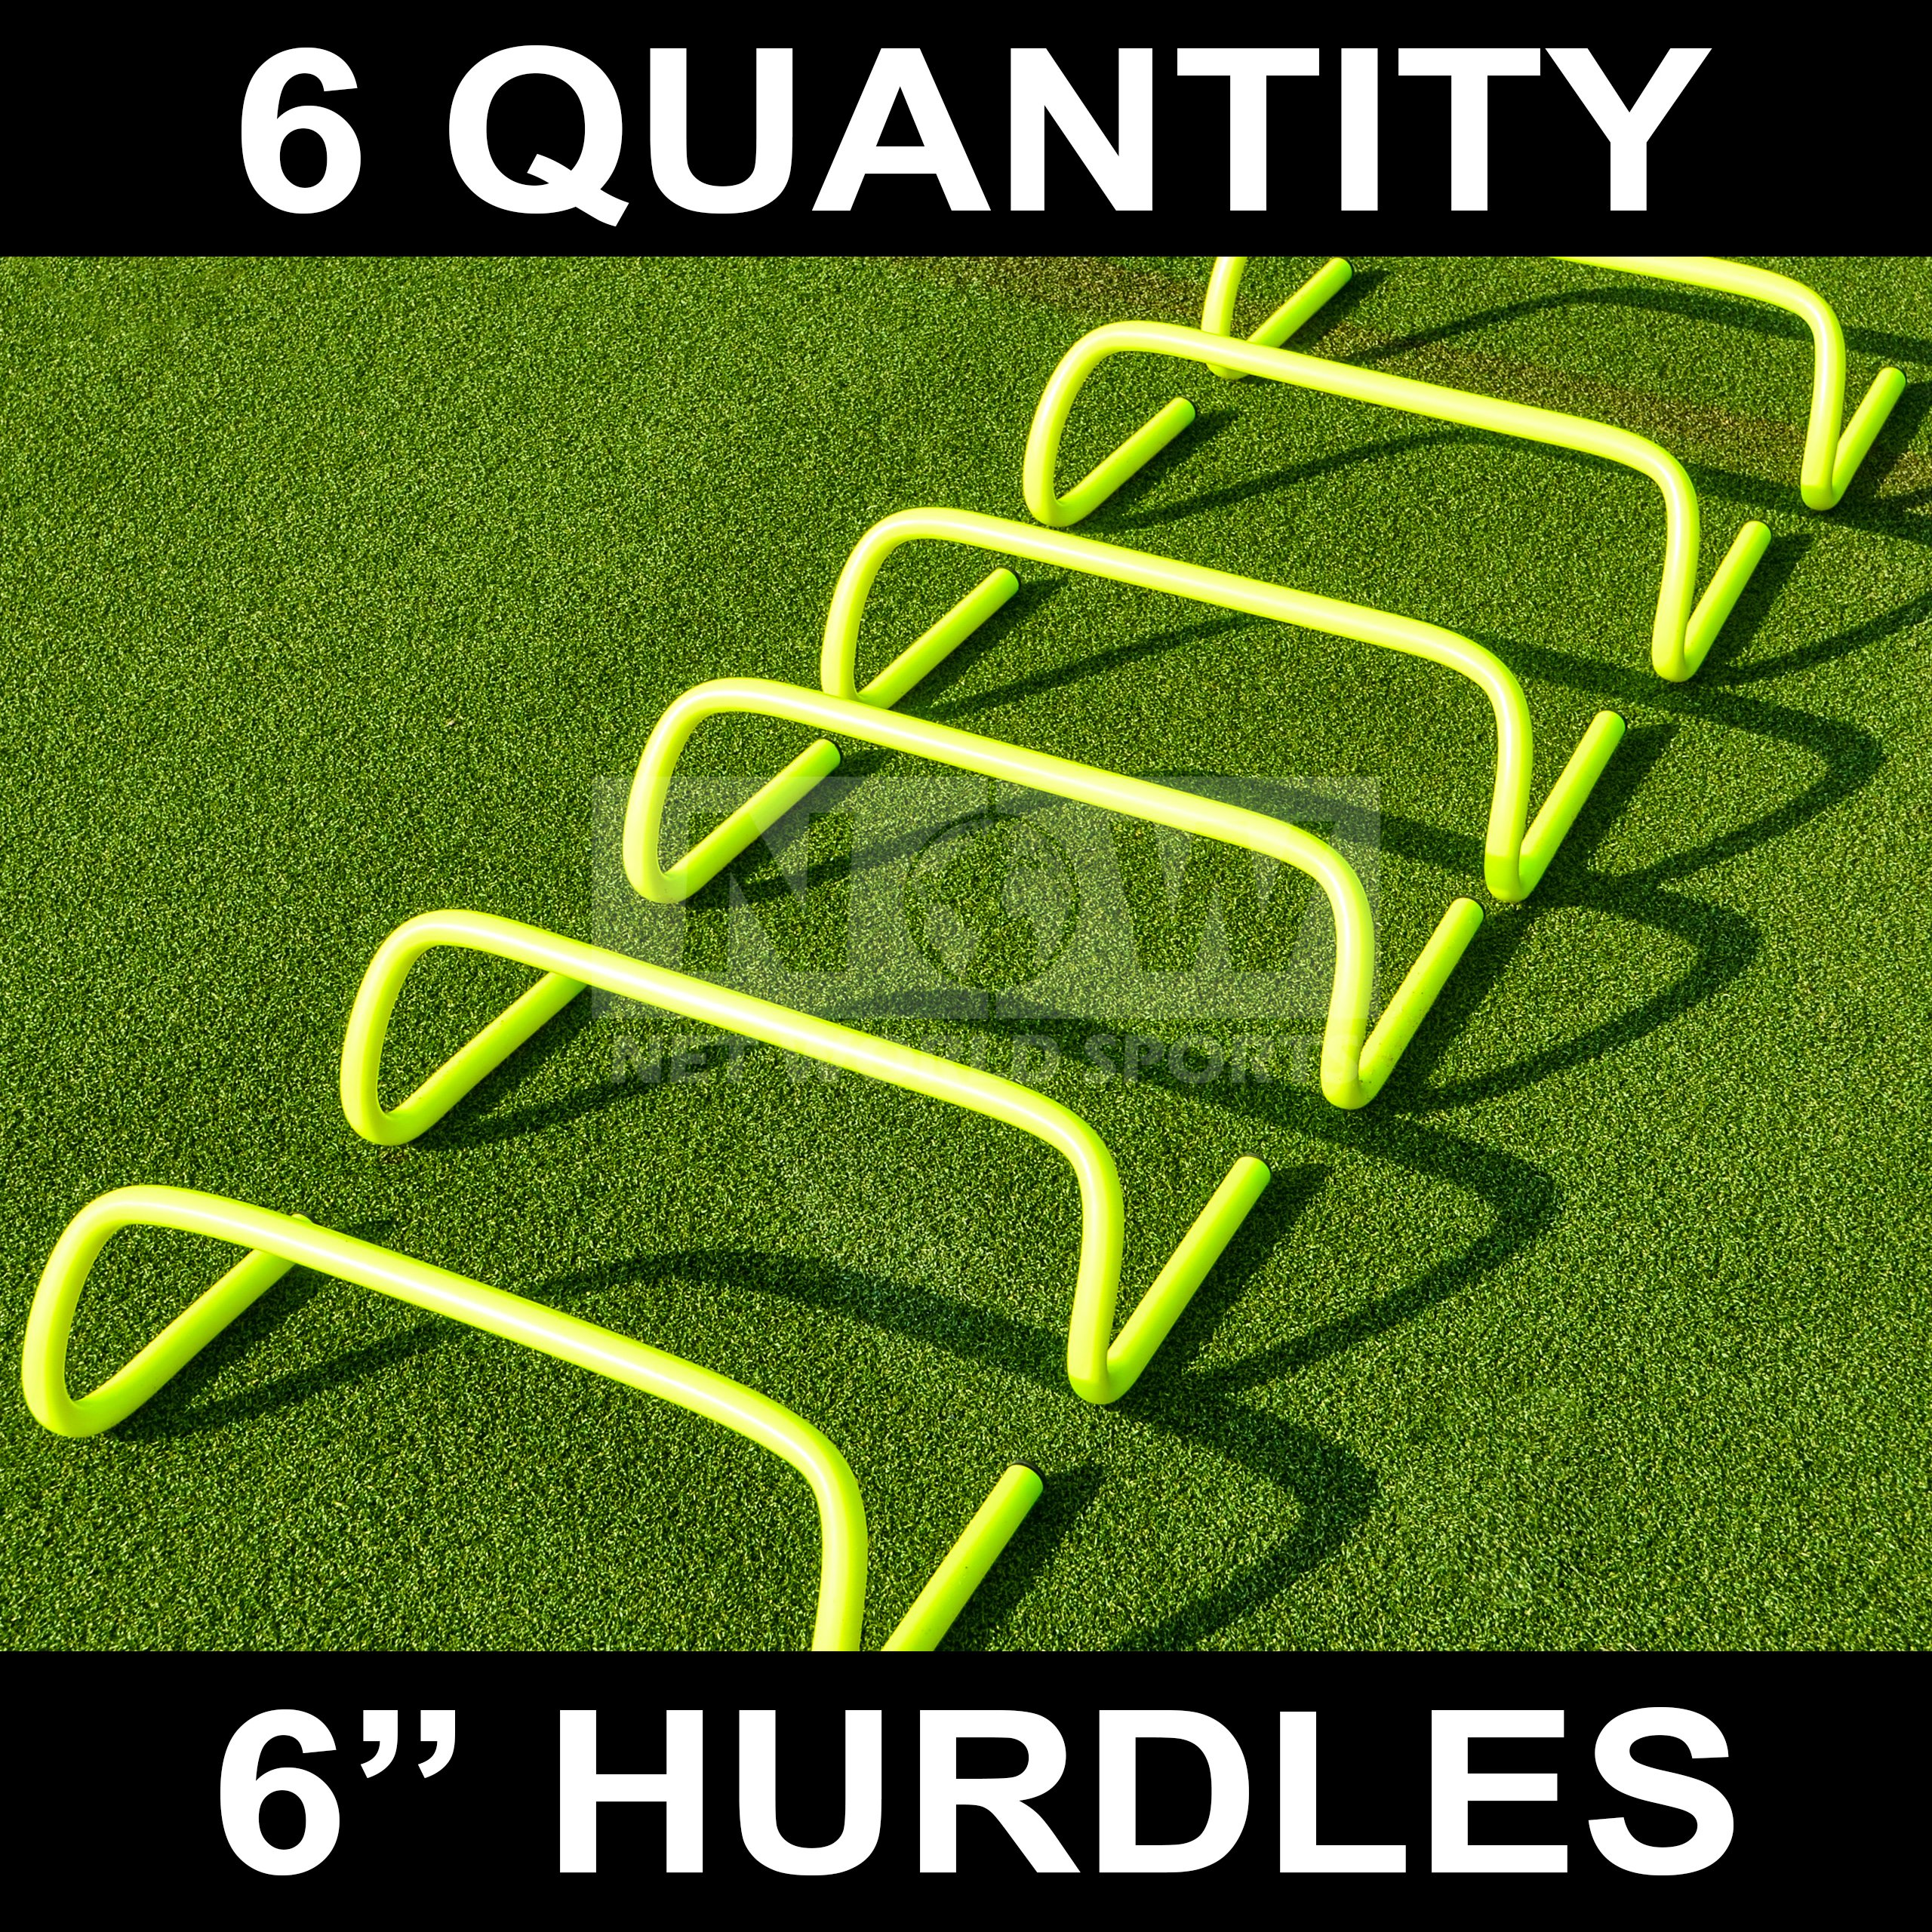 Net World Sports 12'' Speed Hurdles [Set of 6] - New and Improved Design, (12 inch) by Net World Sports